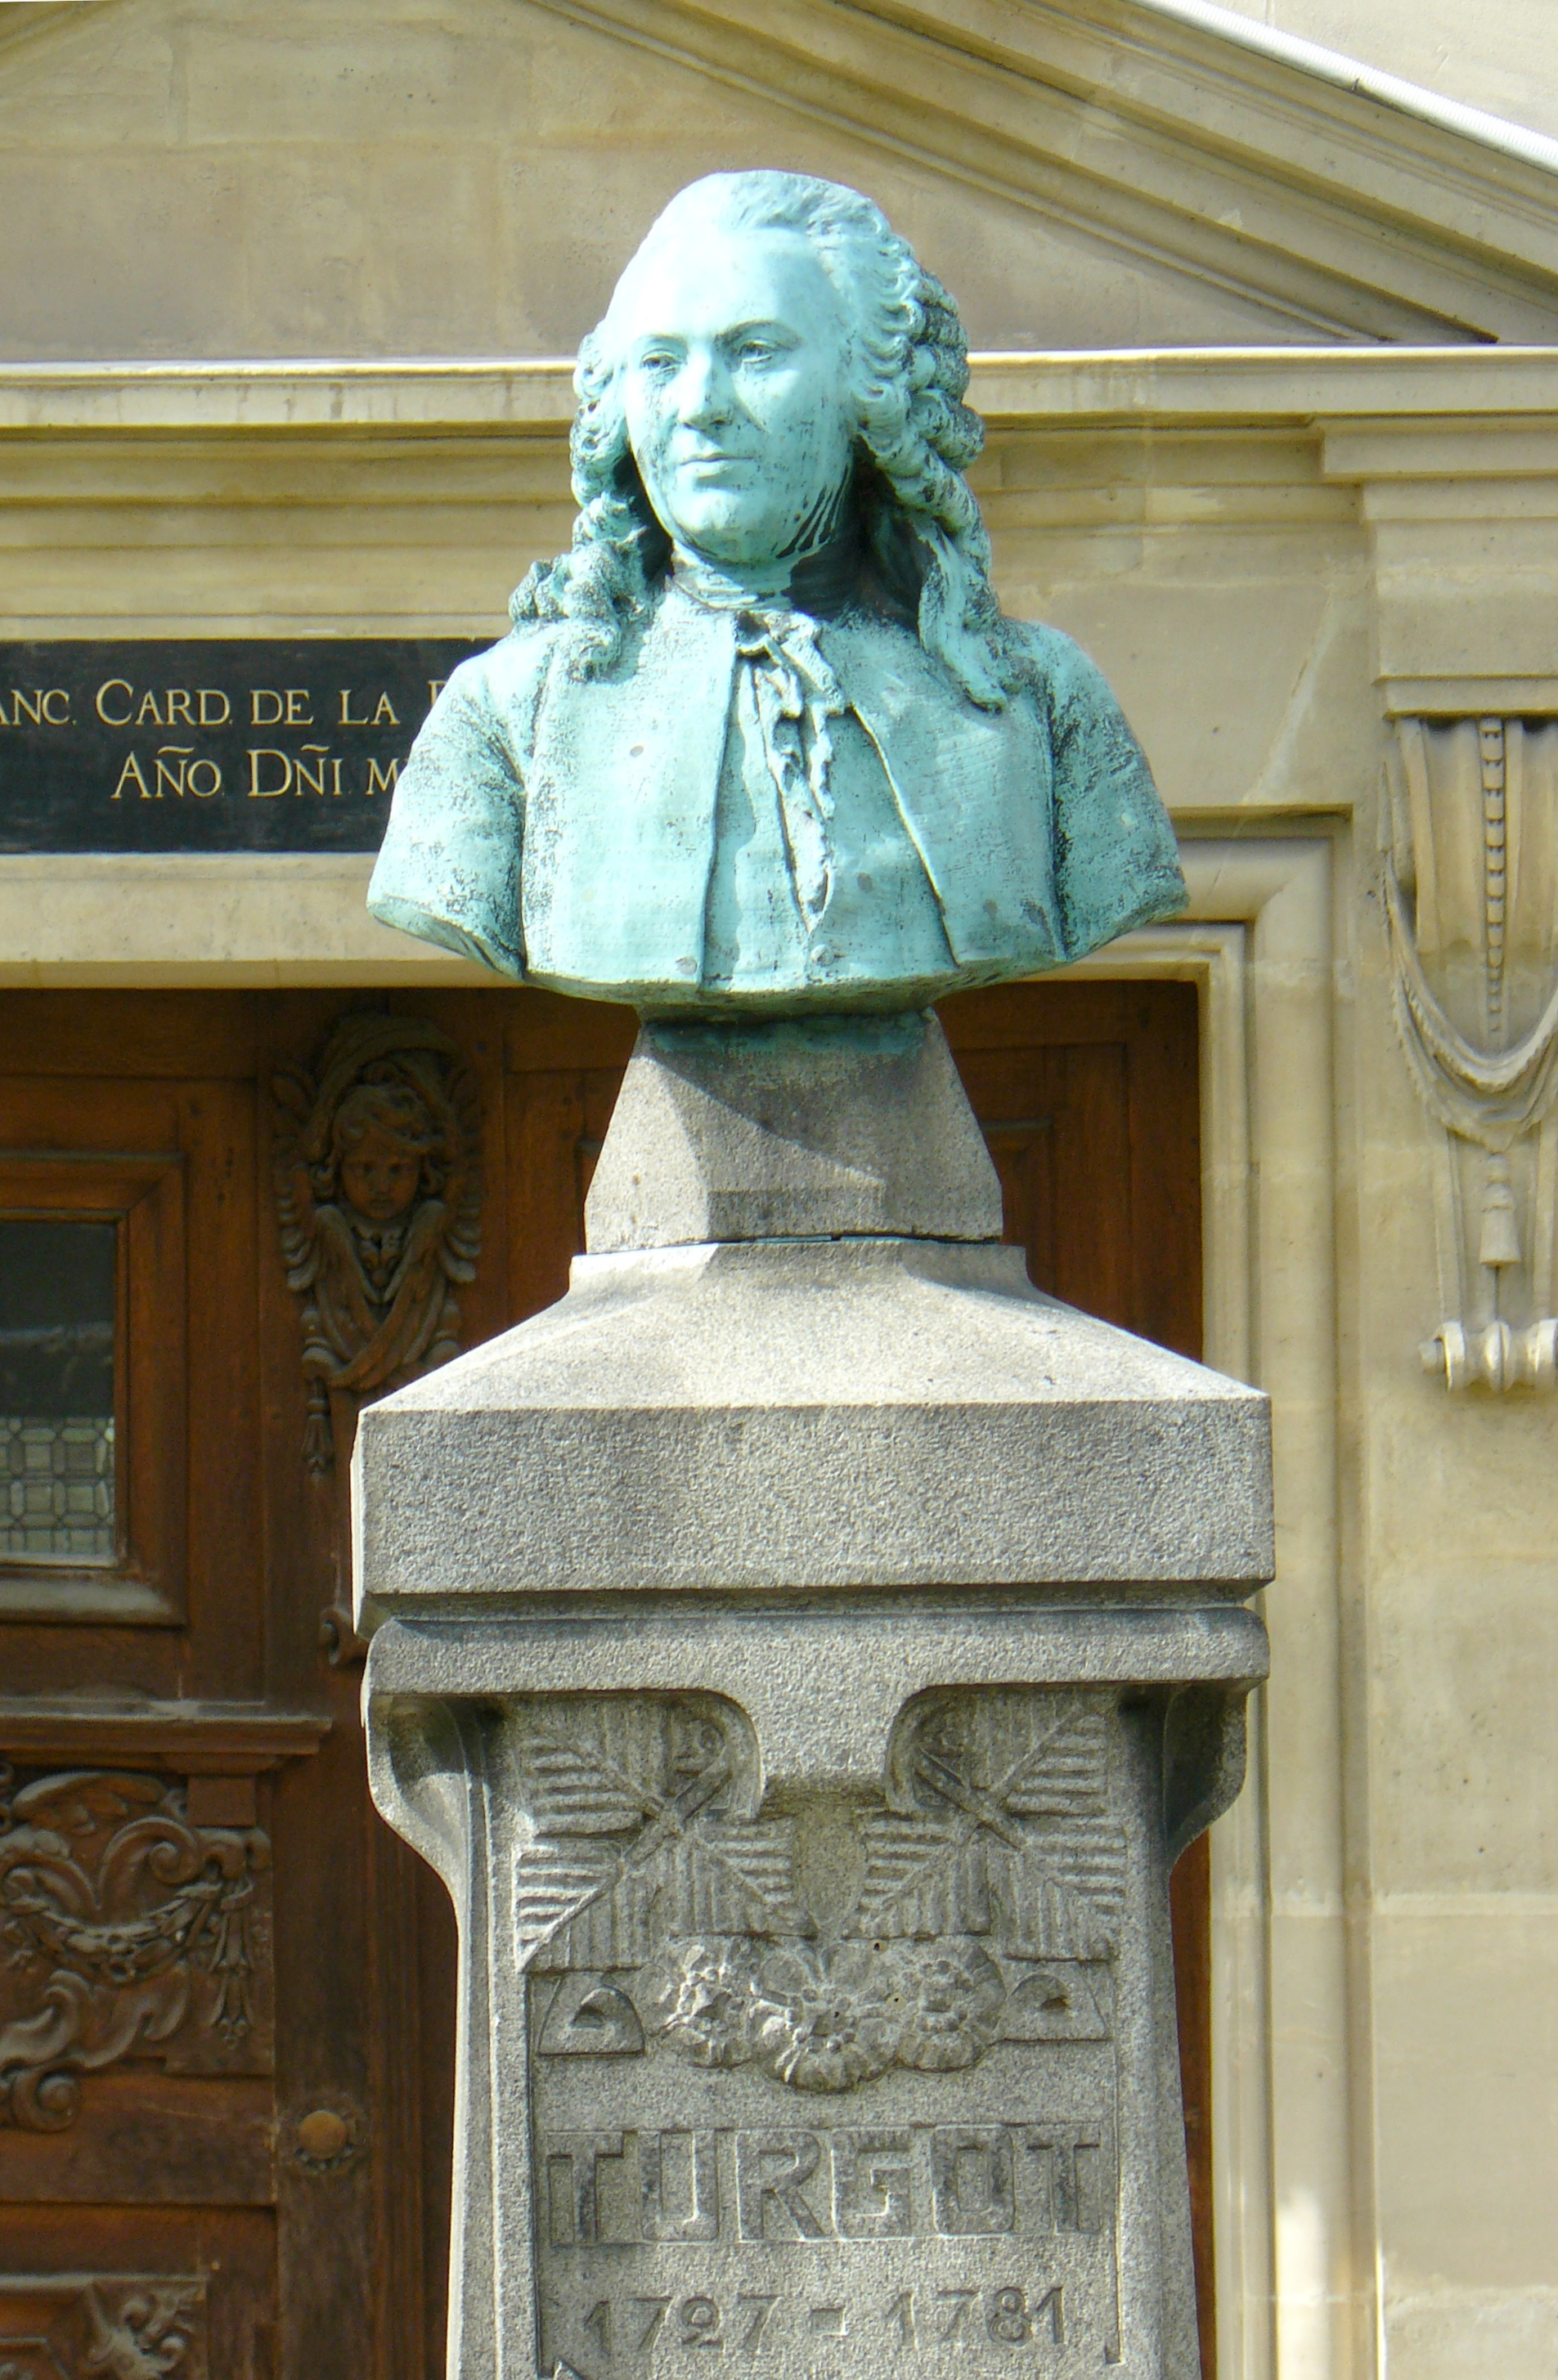 Turgot buste ancien hôpital Laennec Paris.jpg